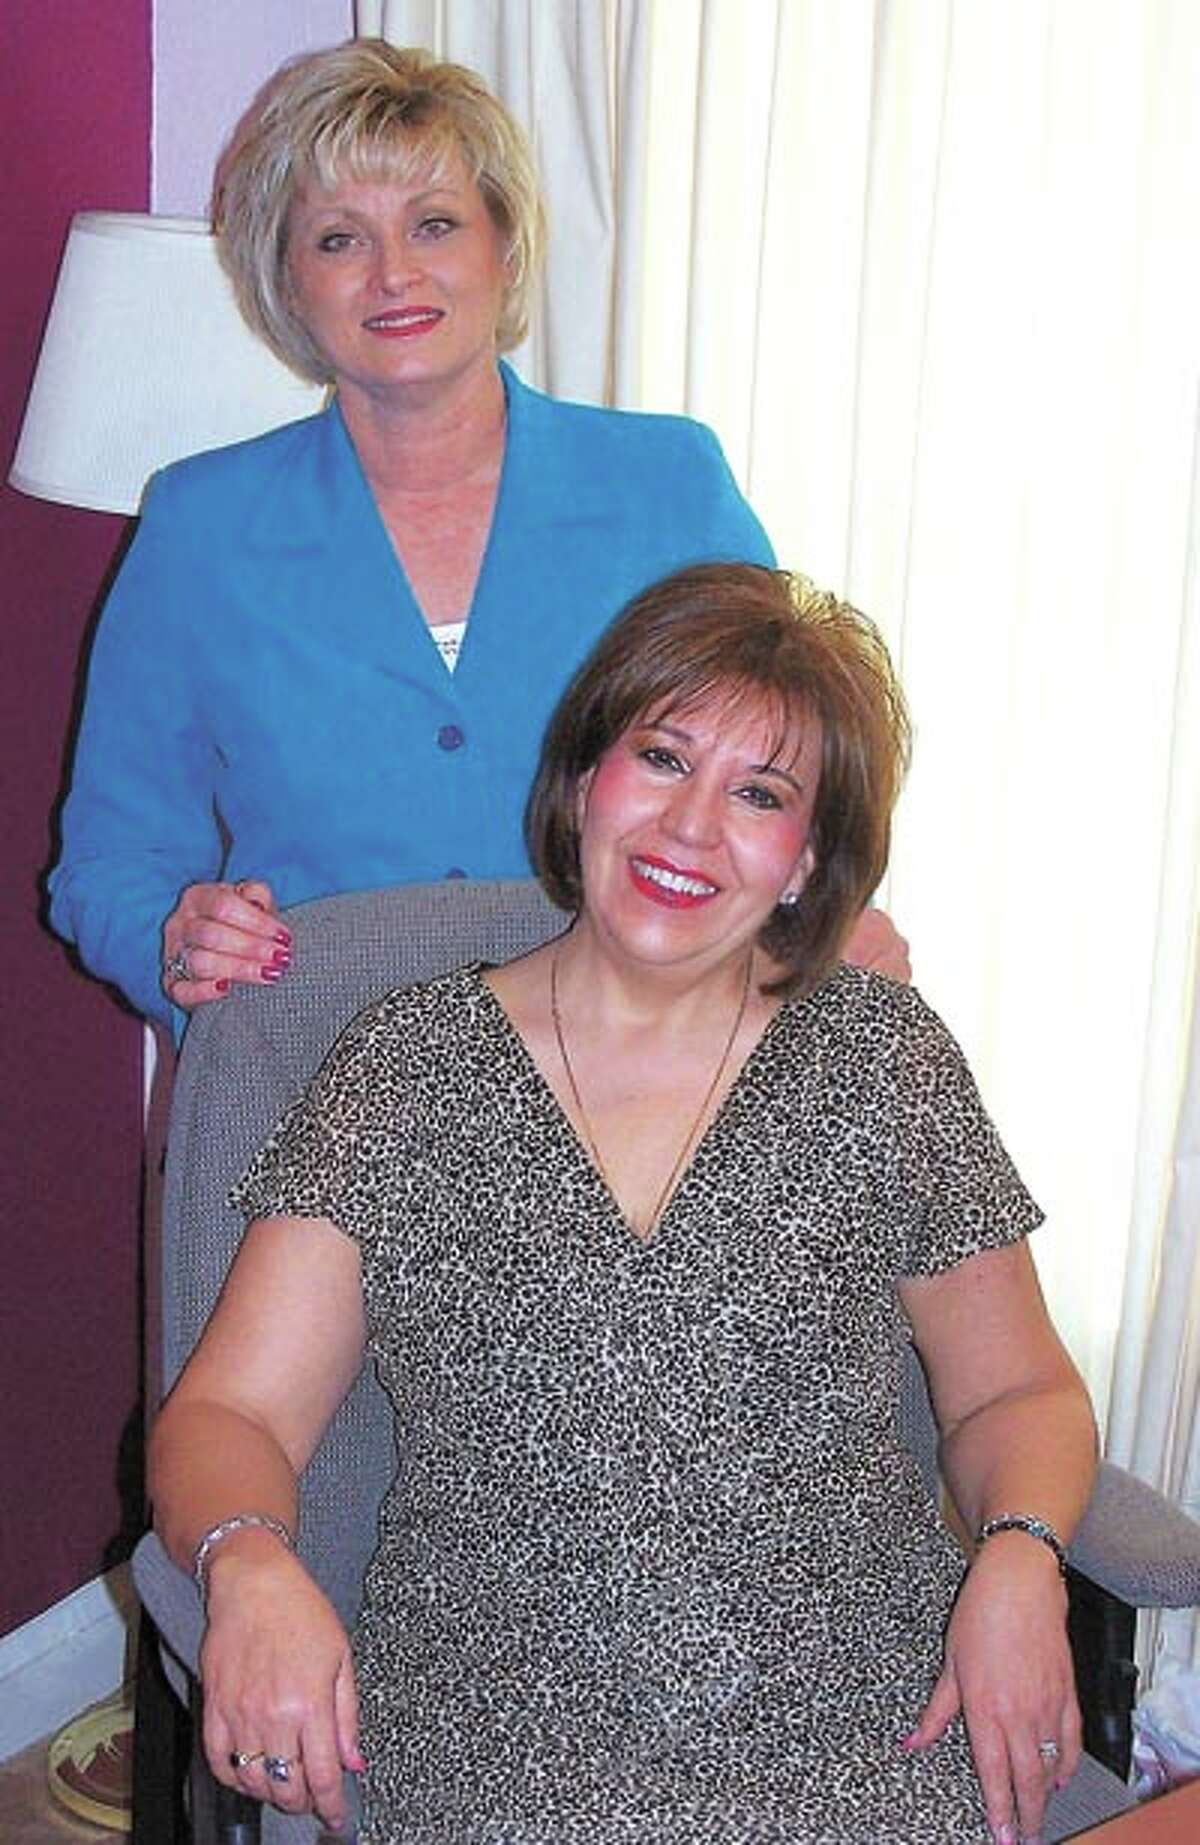 Chocolates are tasty, roses are beautiful, but a job you love is priceless-and that's what Patricia Gomez, Fran Hawke and the friendly folks at Staffing Resources are all about helping you find. Call Staffing Resources at 684-0527 or visit their website at www.igotthe jobs.com.